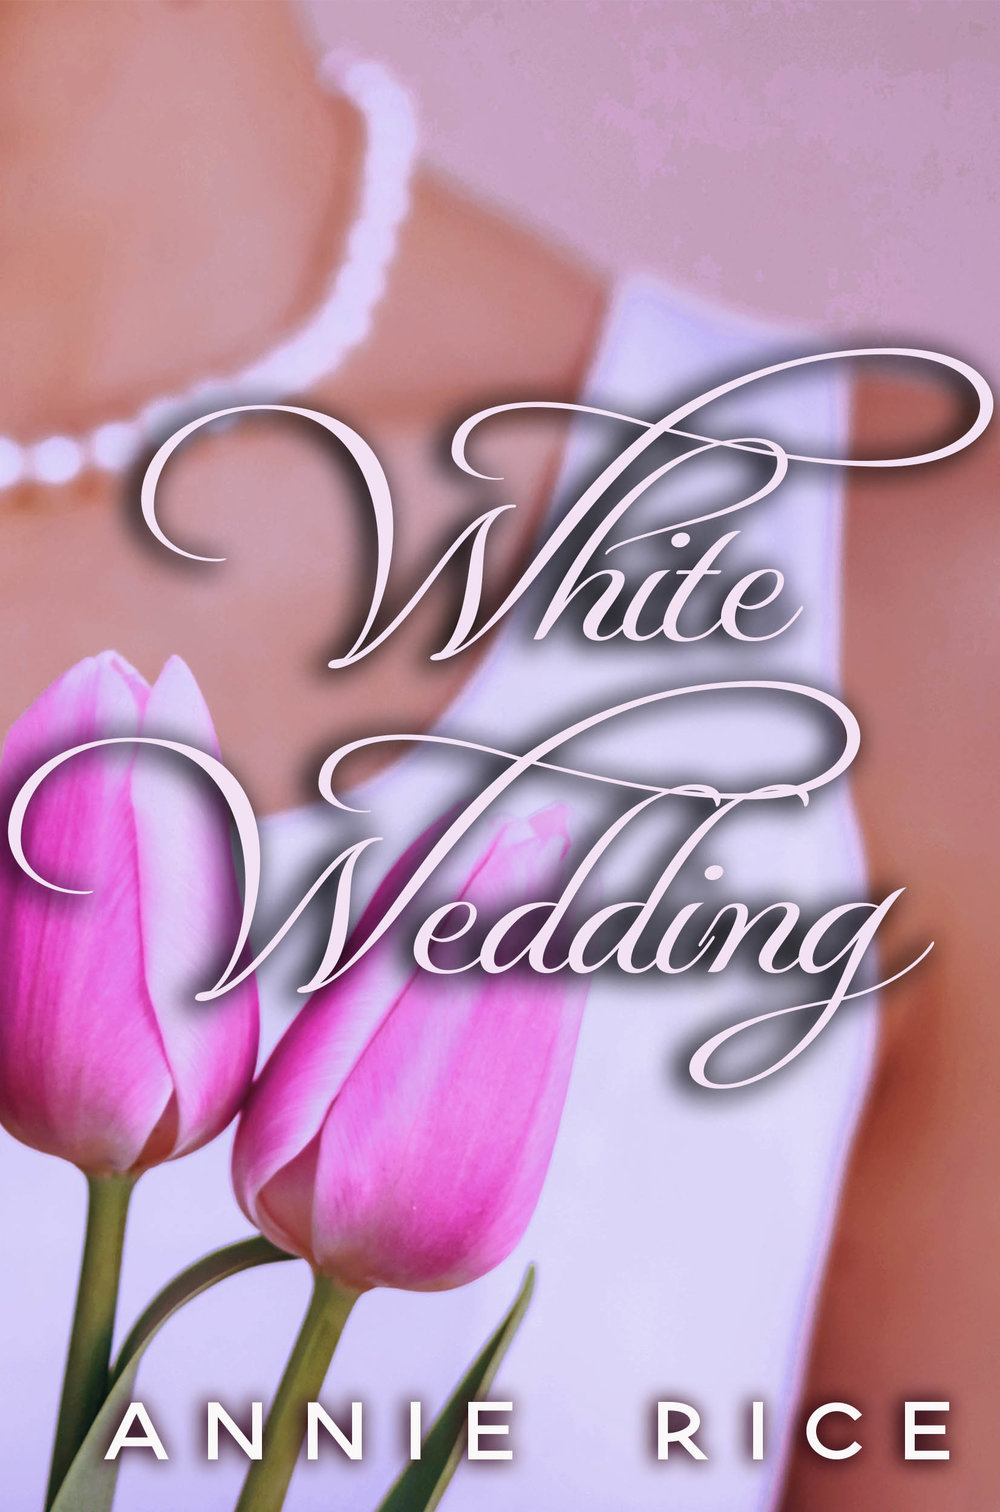 WhiteWedding3.jpg